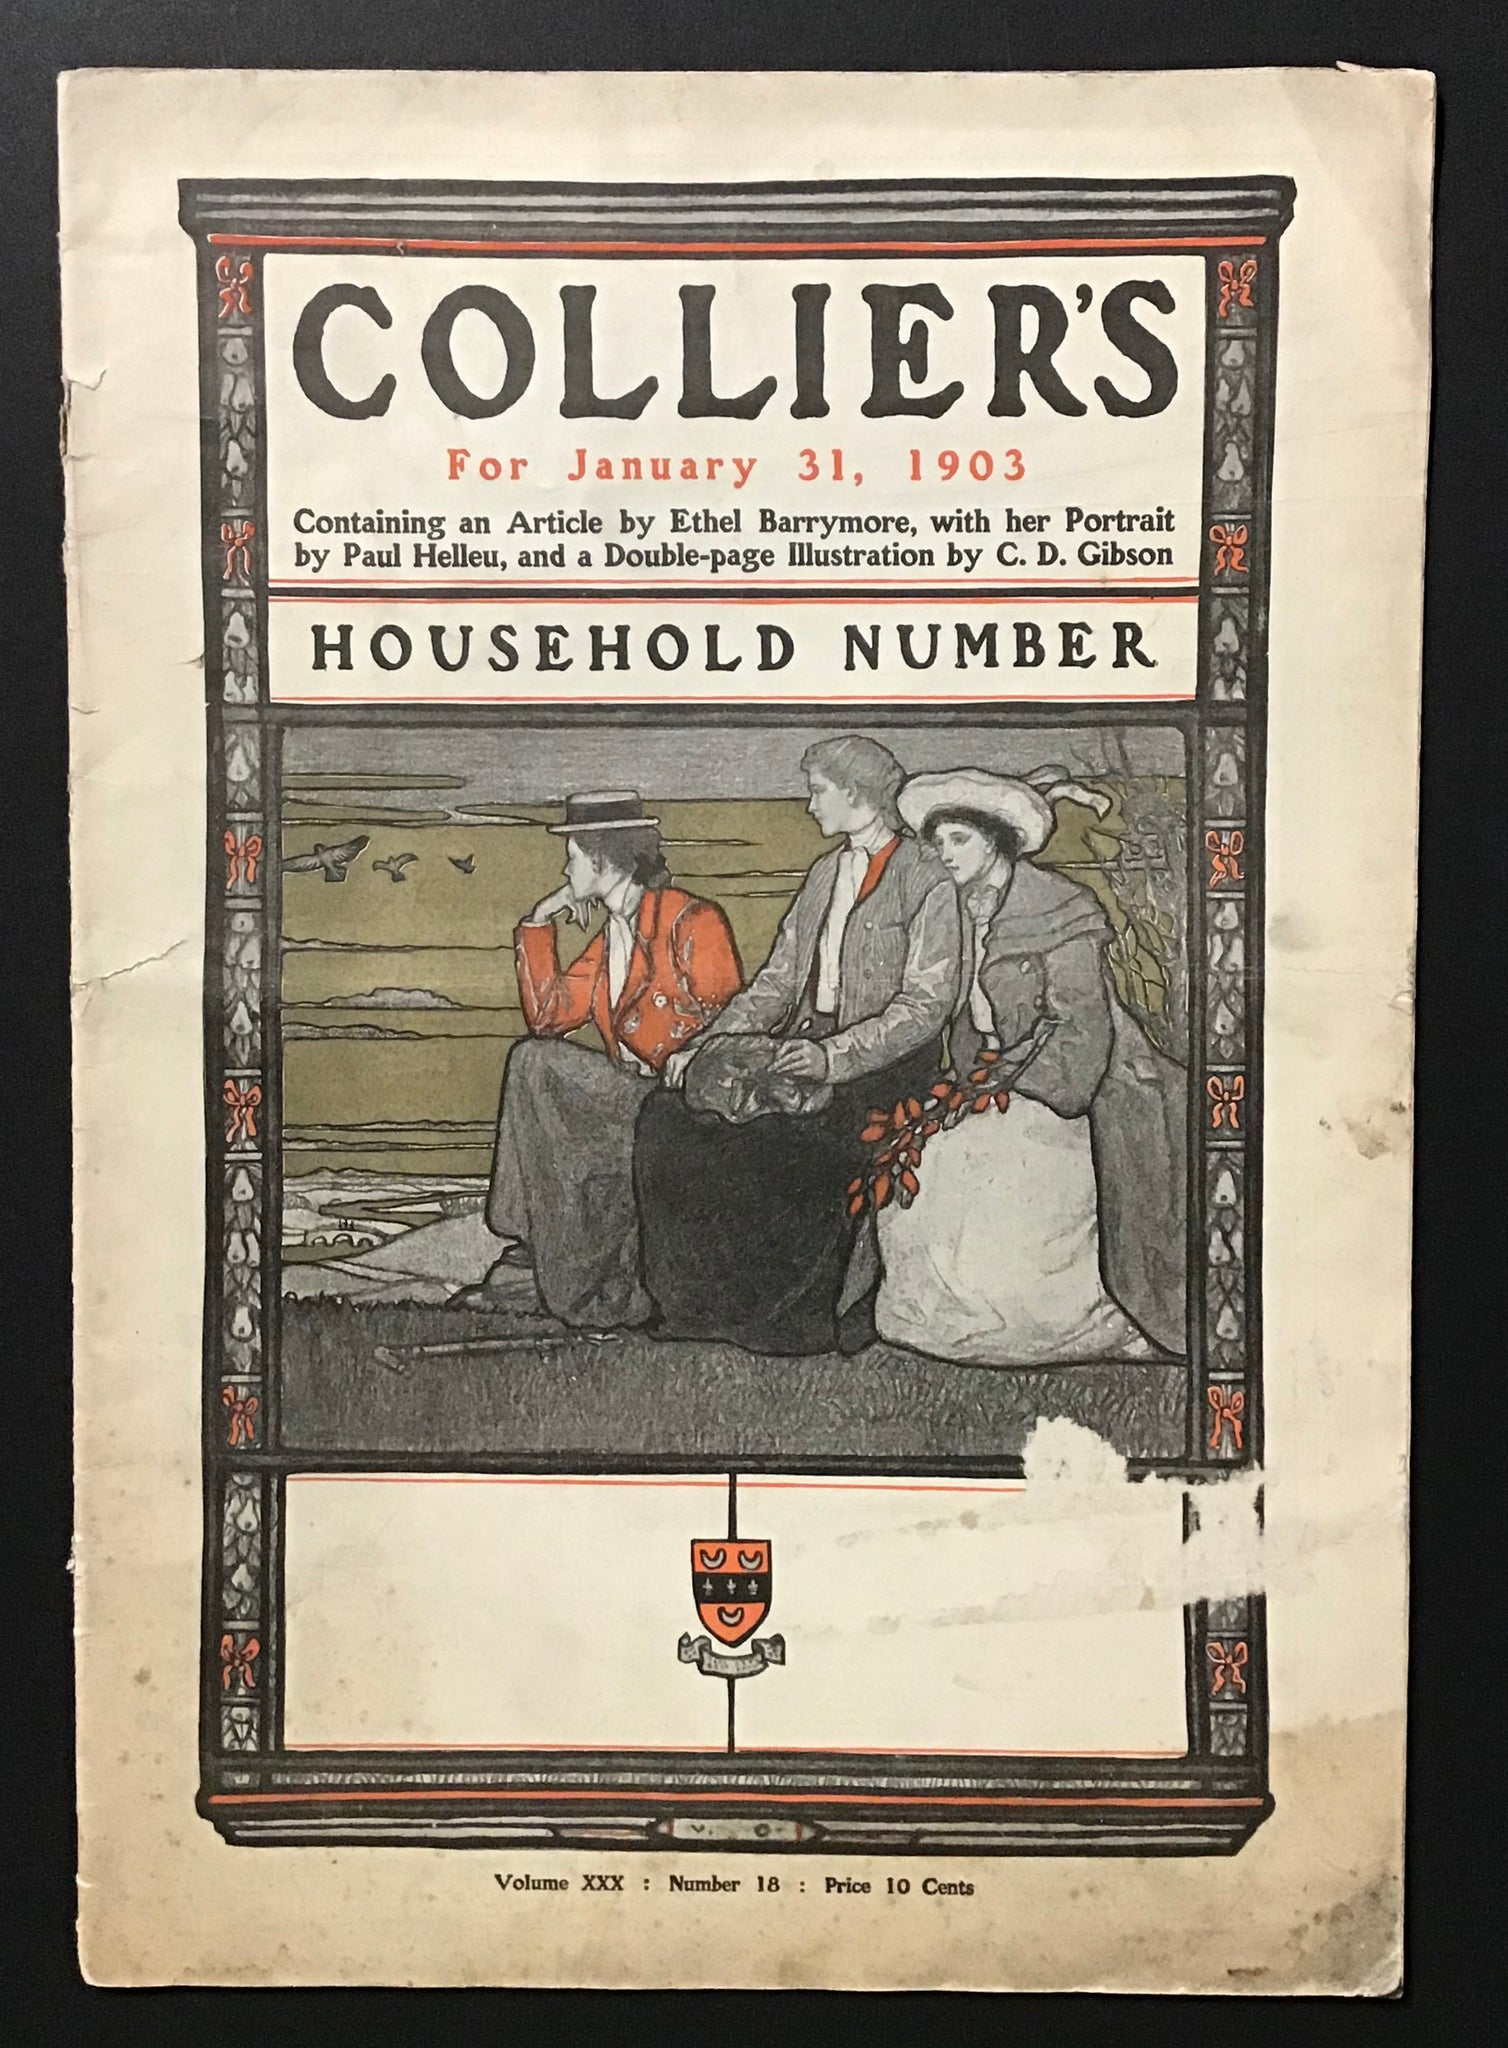 Collier's - For January 31, 1903